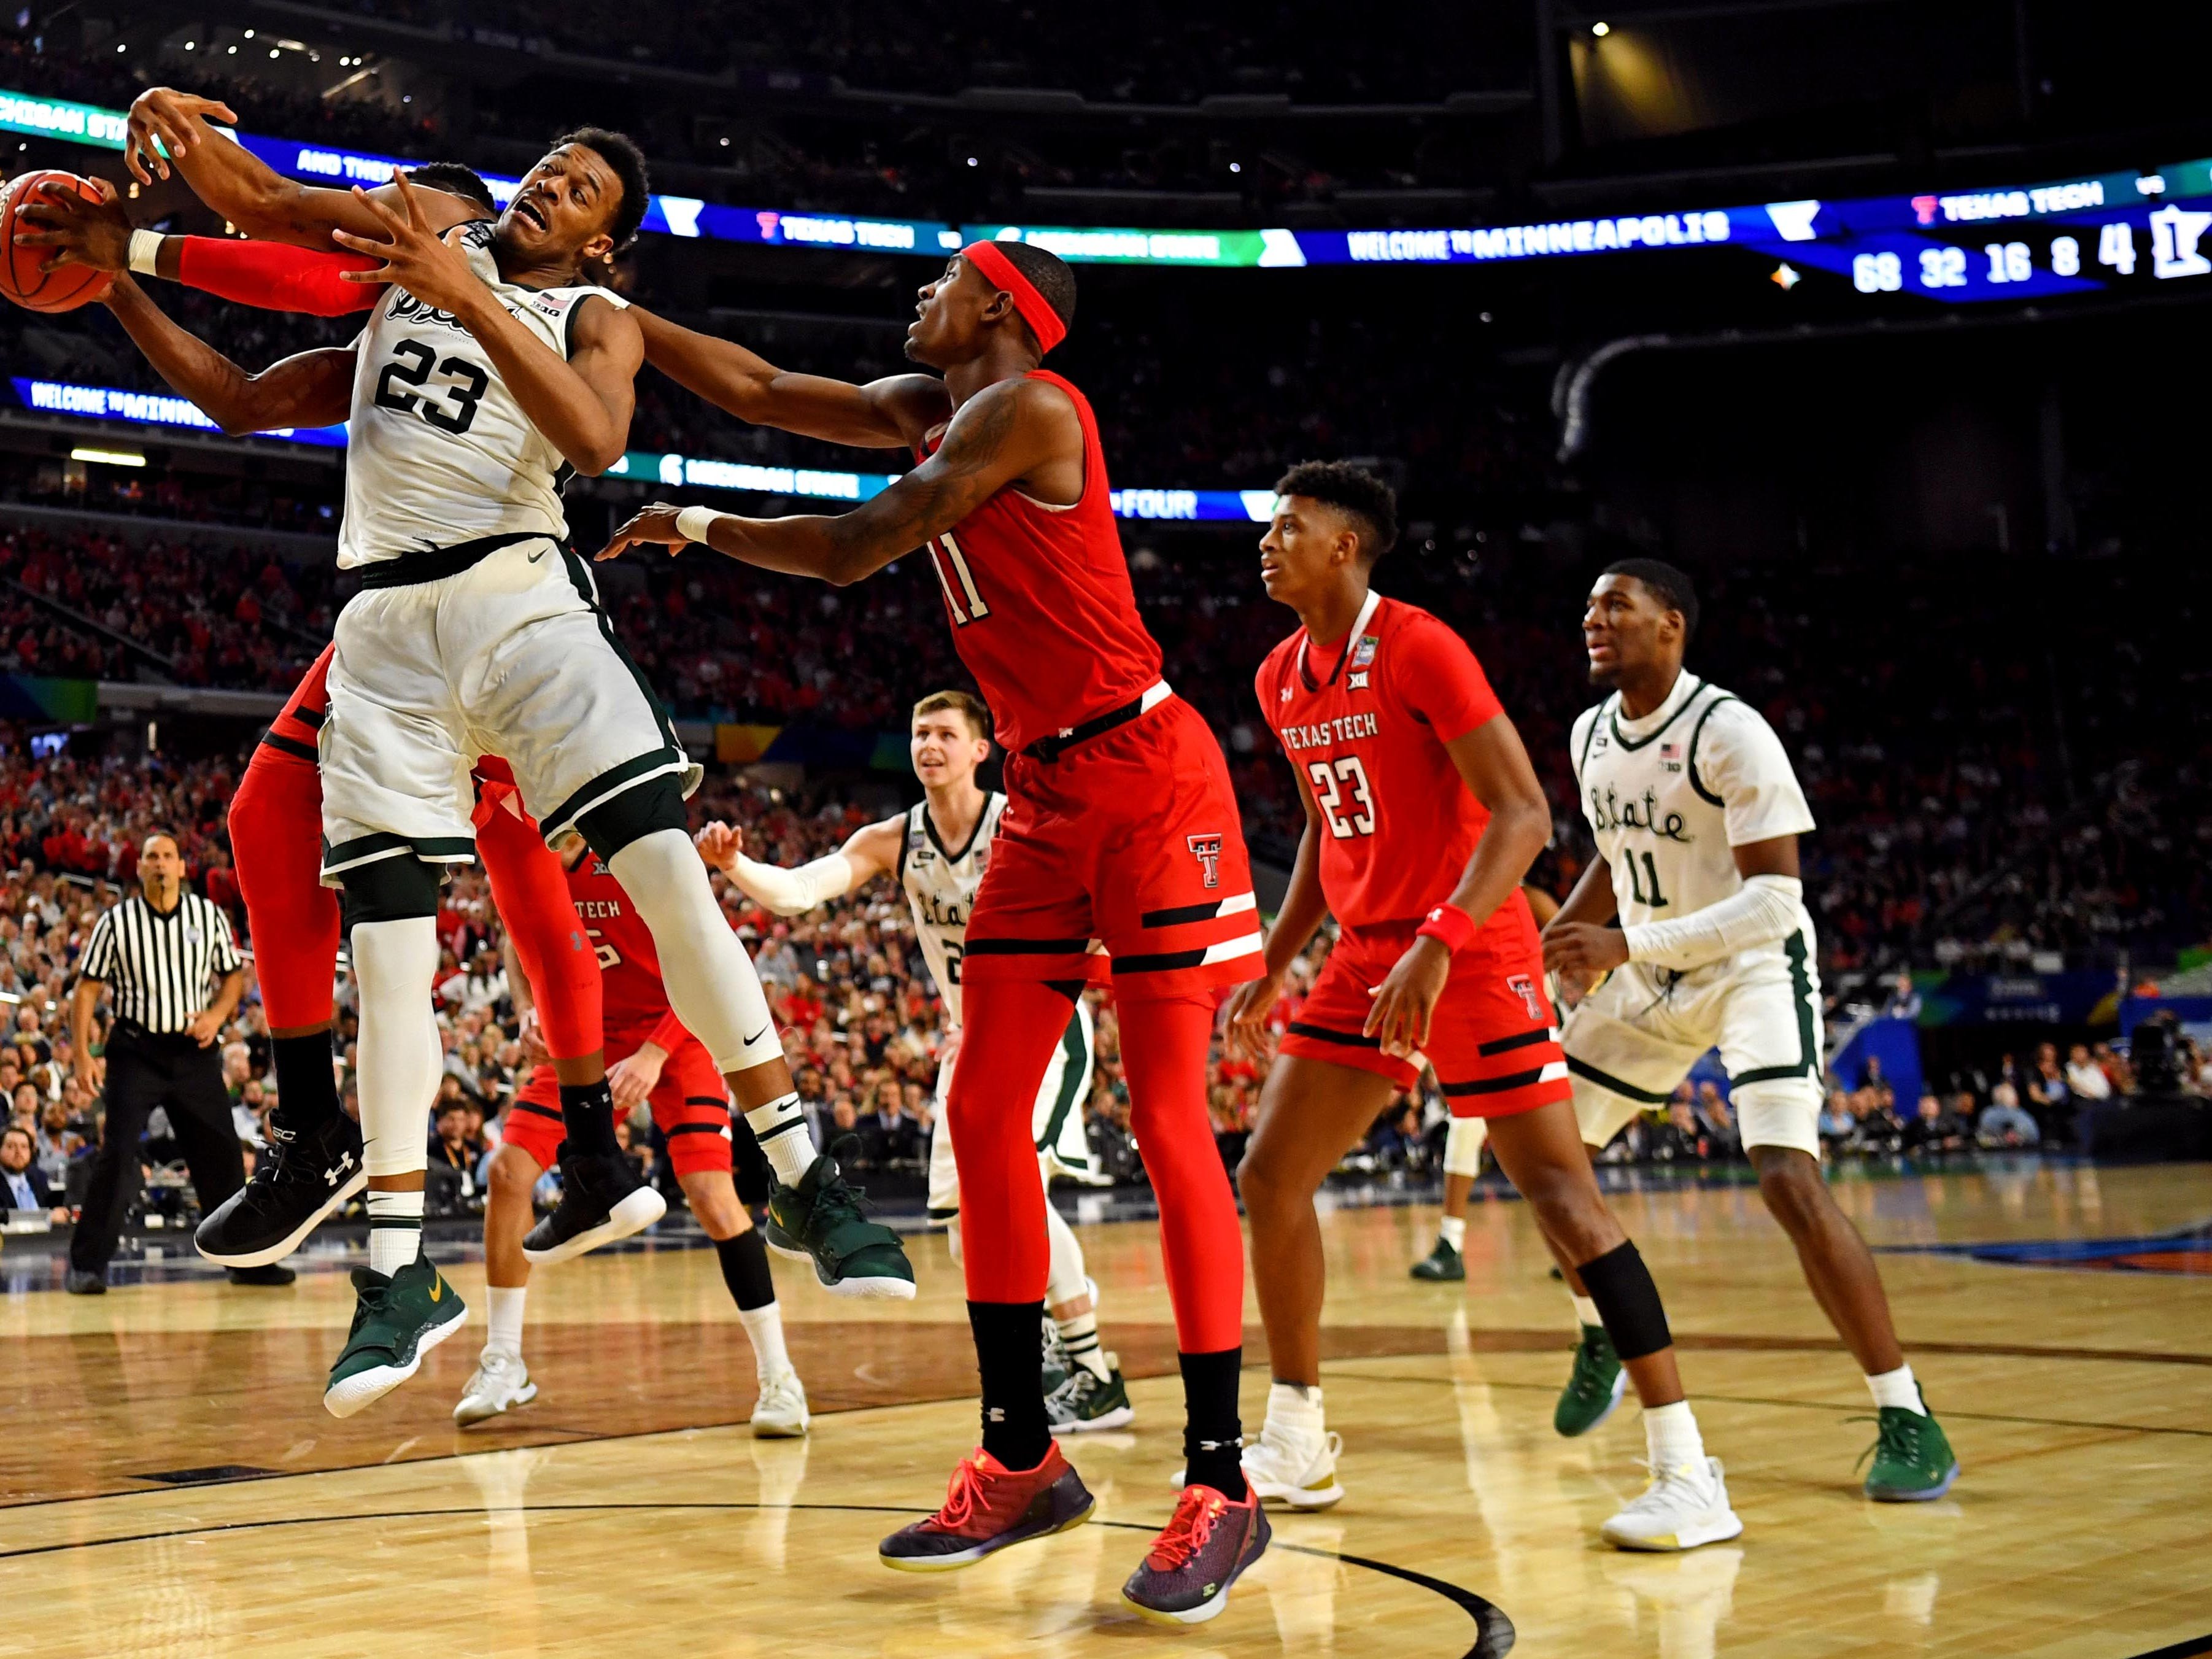 Apr 6, 2019; Minneapolis, MN, USA; Michigan State Spartans forward Xavier Tillman (23) and Texas Tech Red Raiders center Norense Odiase (32) for a rebound during the second half in the semifinals of the 2019 men's Final Four at US Bank Stadium. Mandatory Credit: Bob Donnan-USA TODAY Sports